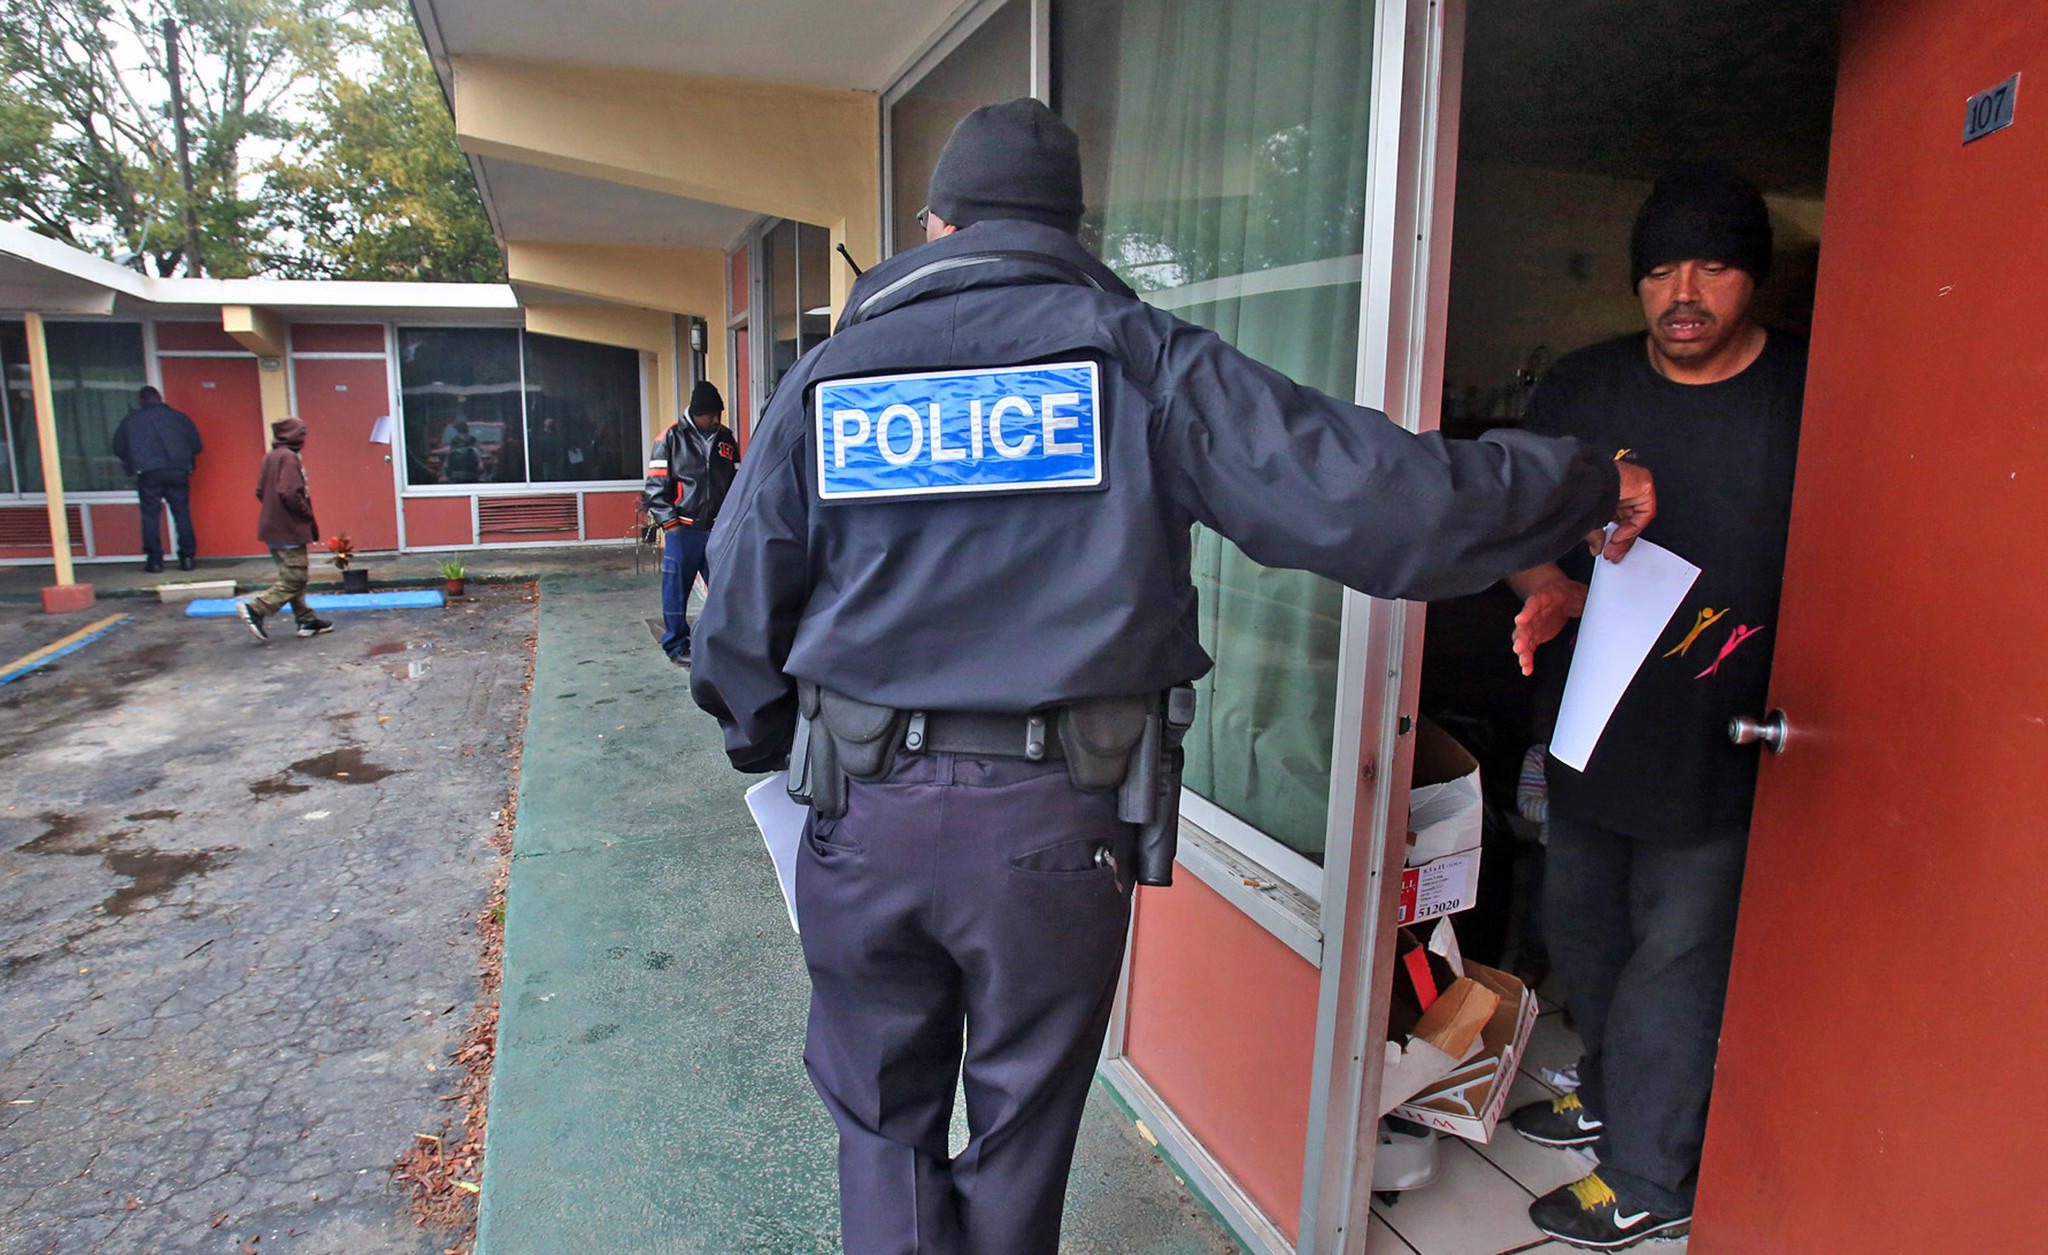 Eatonville Police serve eviction notices to residents Thursday who are left scrambling after an extended-stay motel in Eatonville is shut down on short notice.